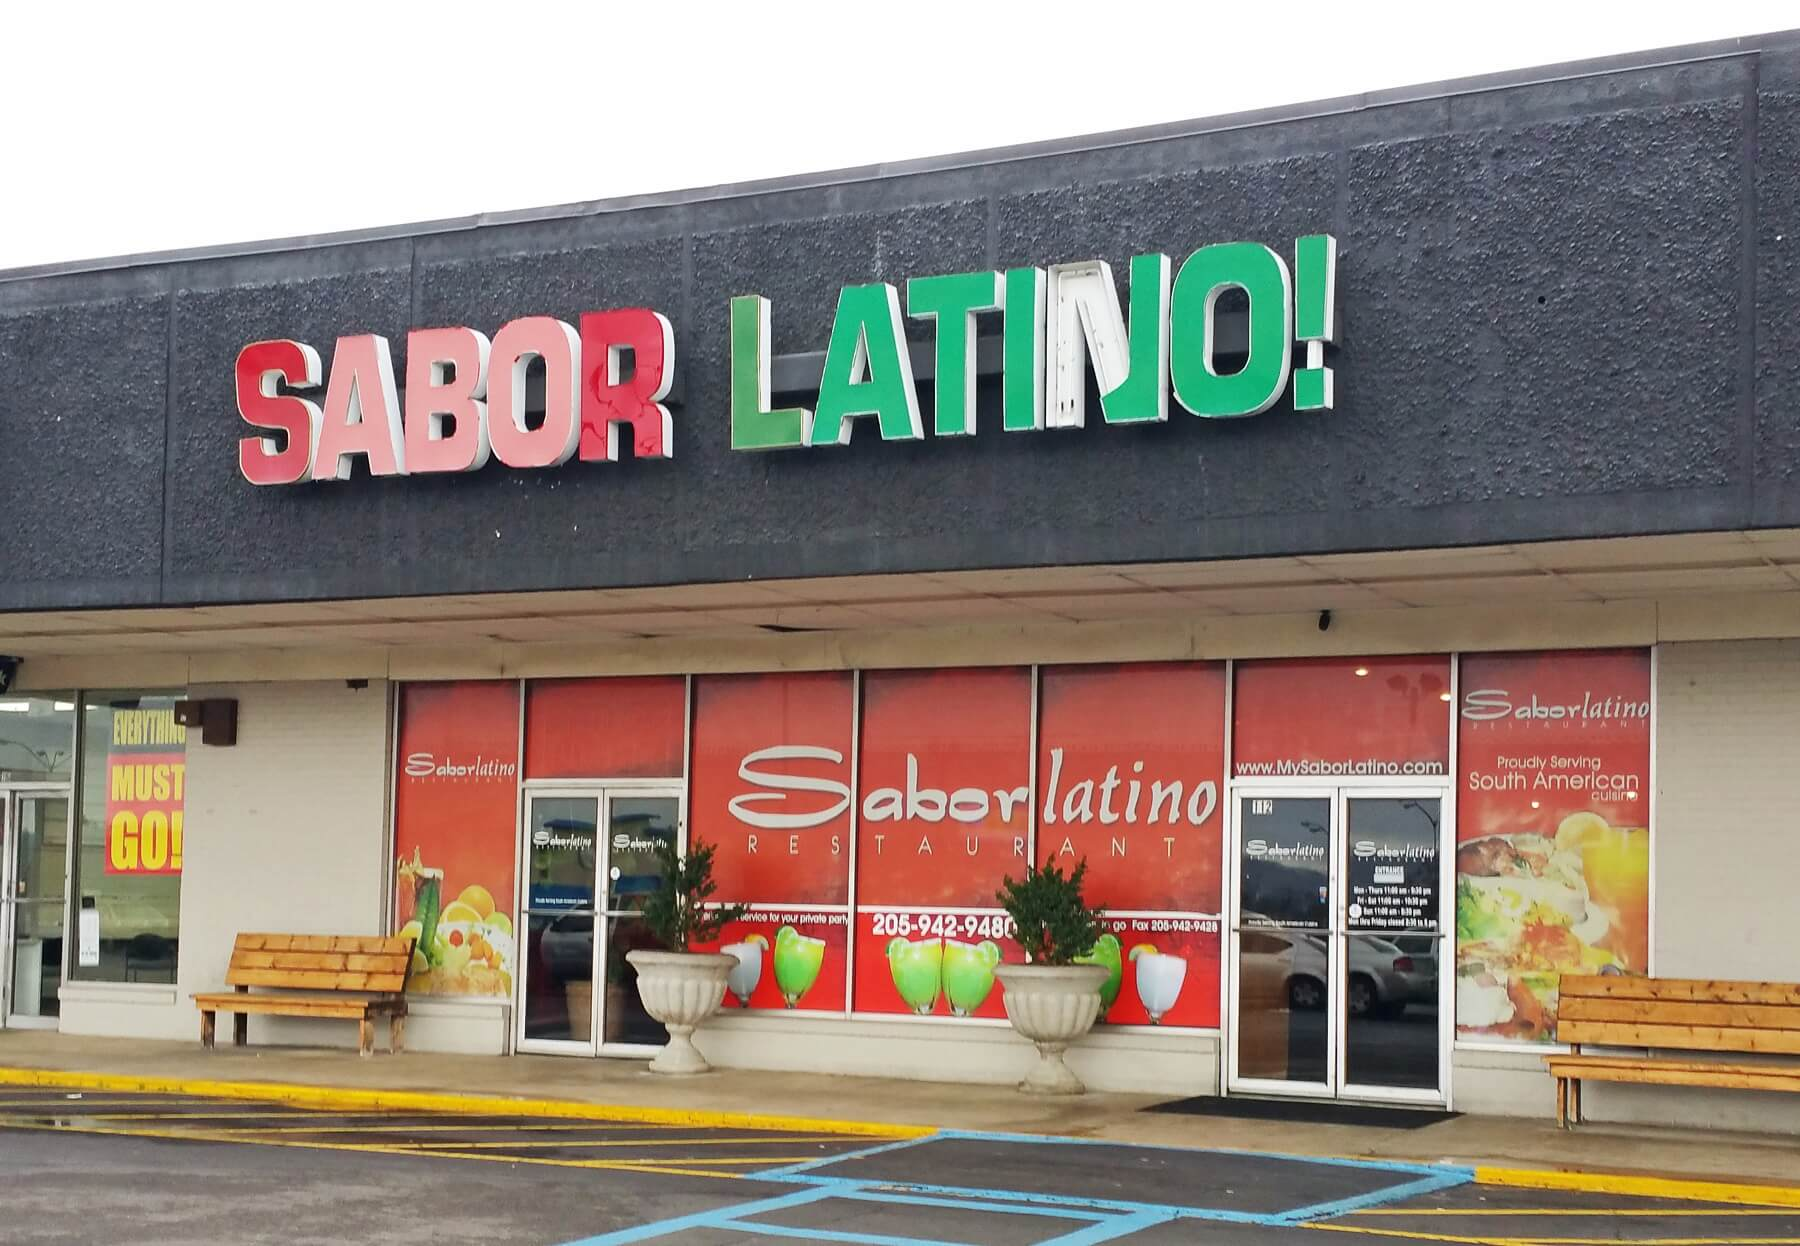 The unassuming façade of Sabor Latino